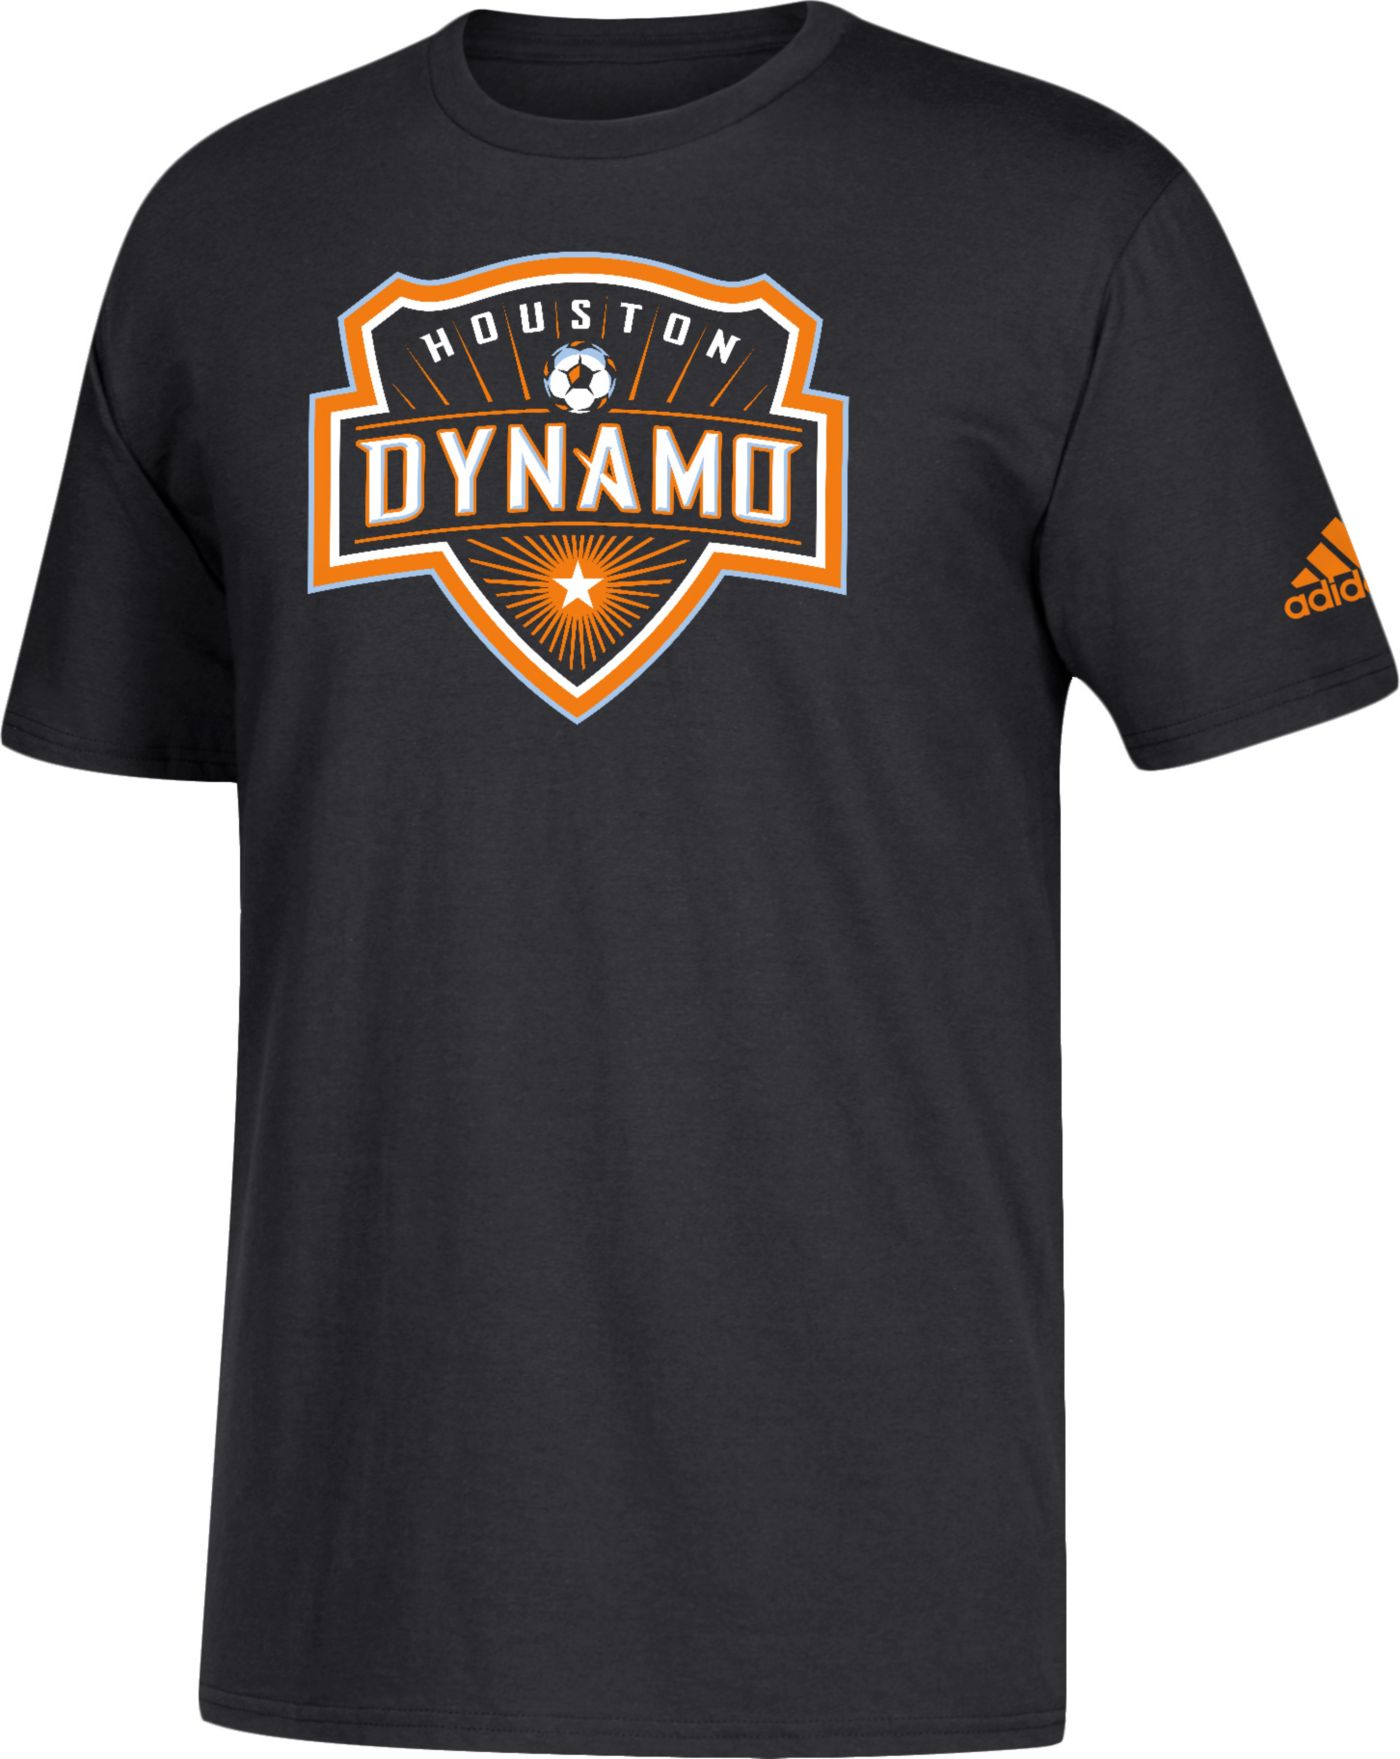 adidas Men's Houston Dynamo Big Logo Black T-Shirt